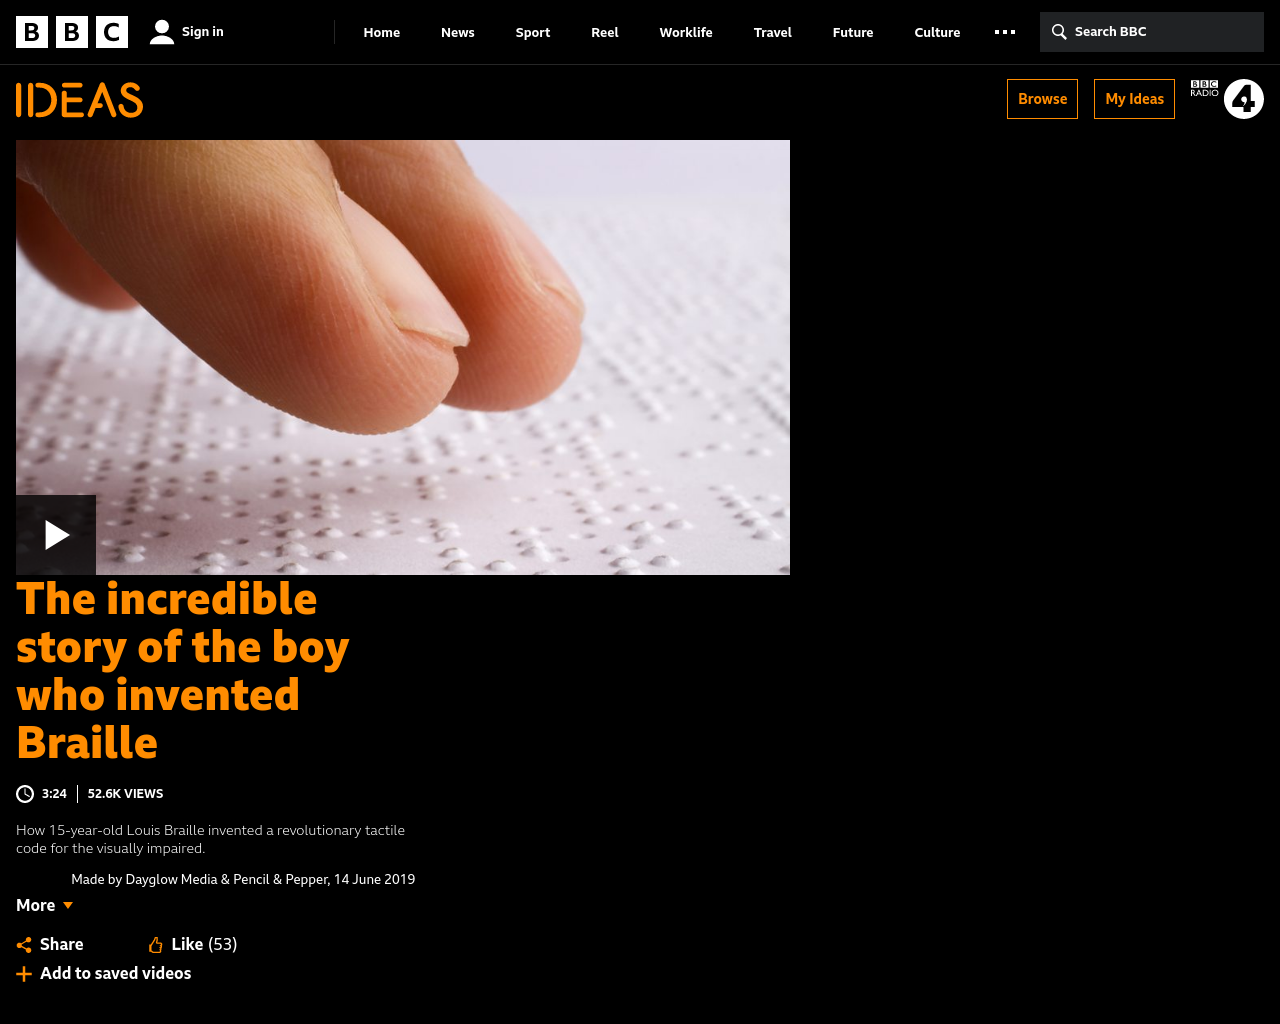 The Incredible Story of the Boy Who invented Braille